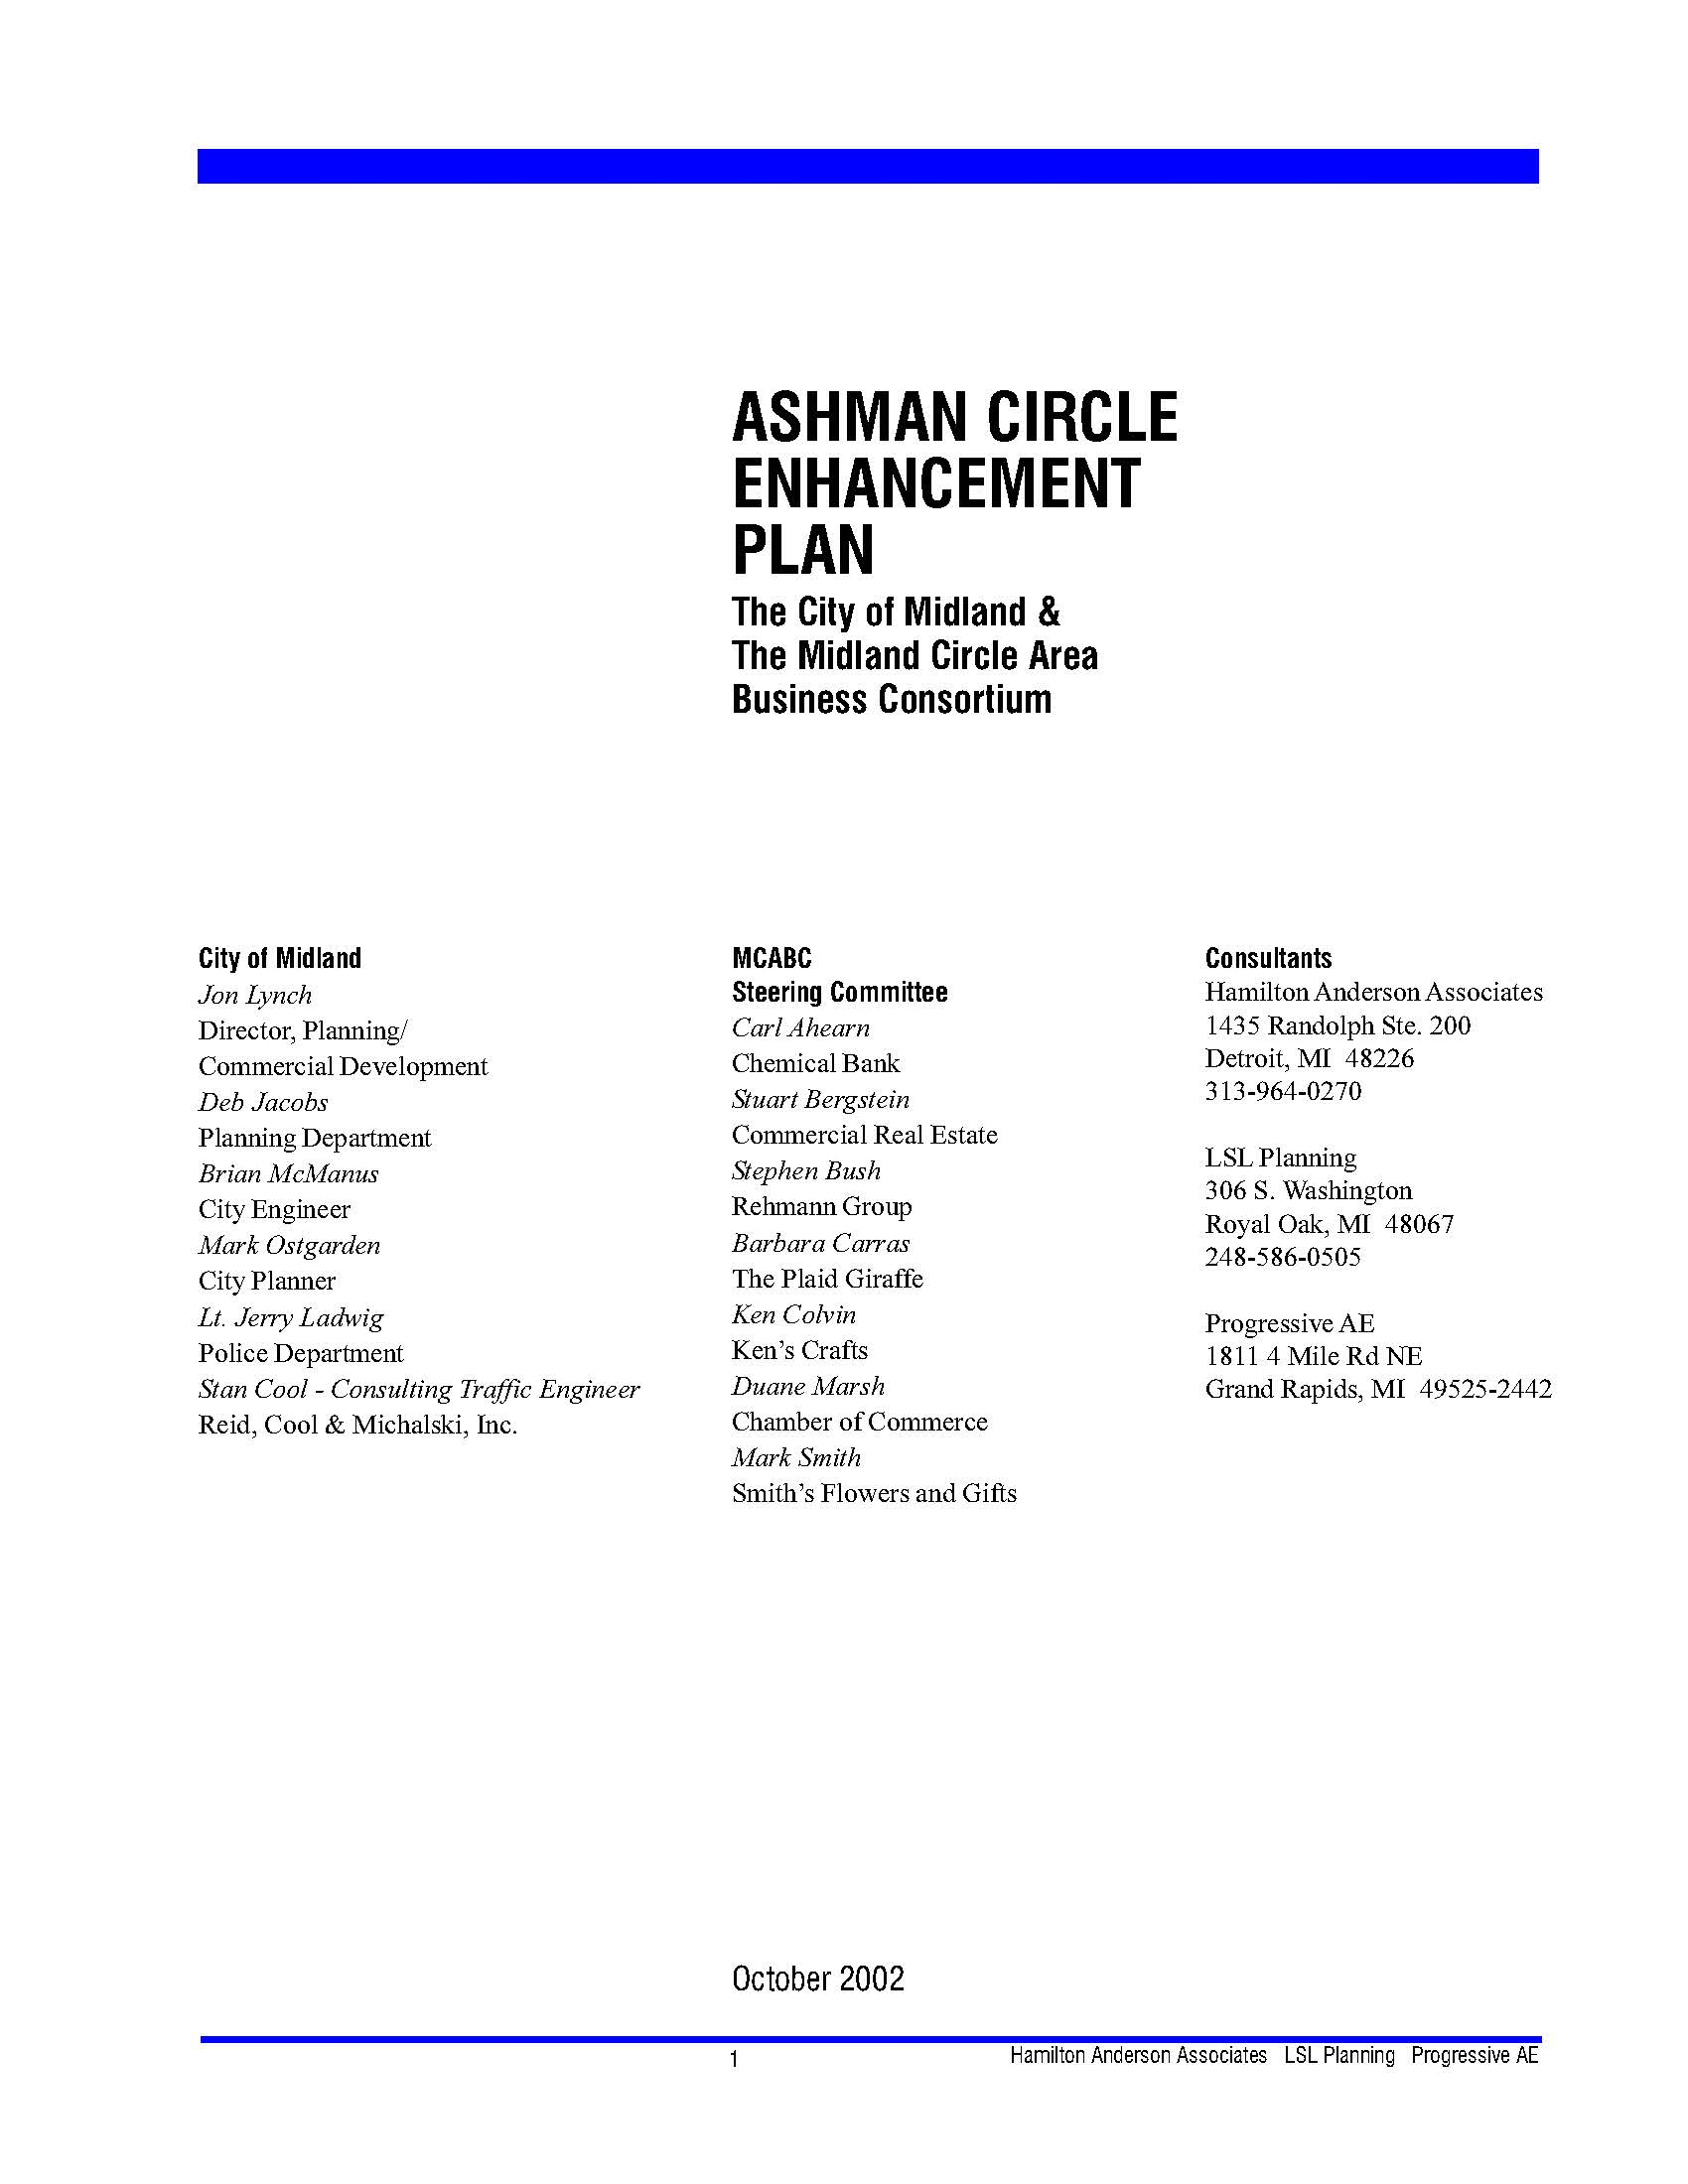 Ashman Circle Enhancement Plan_Page_03.jpg